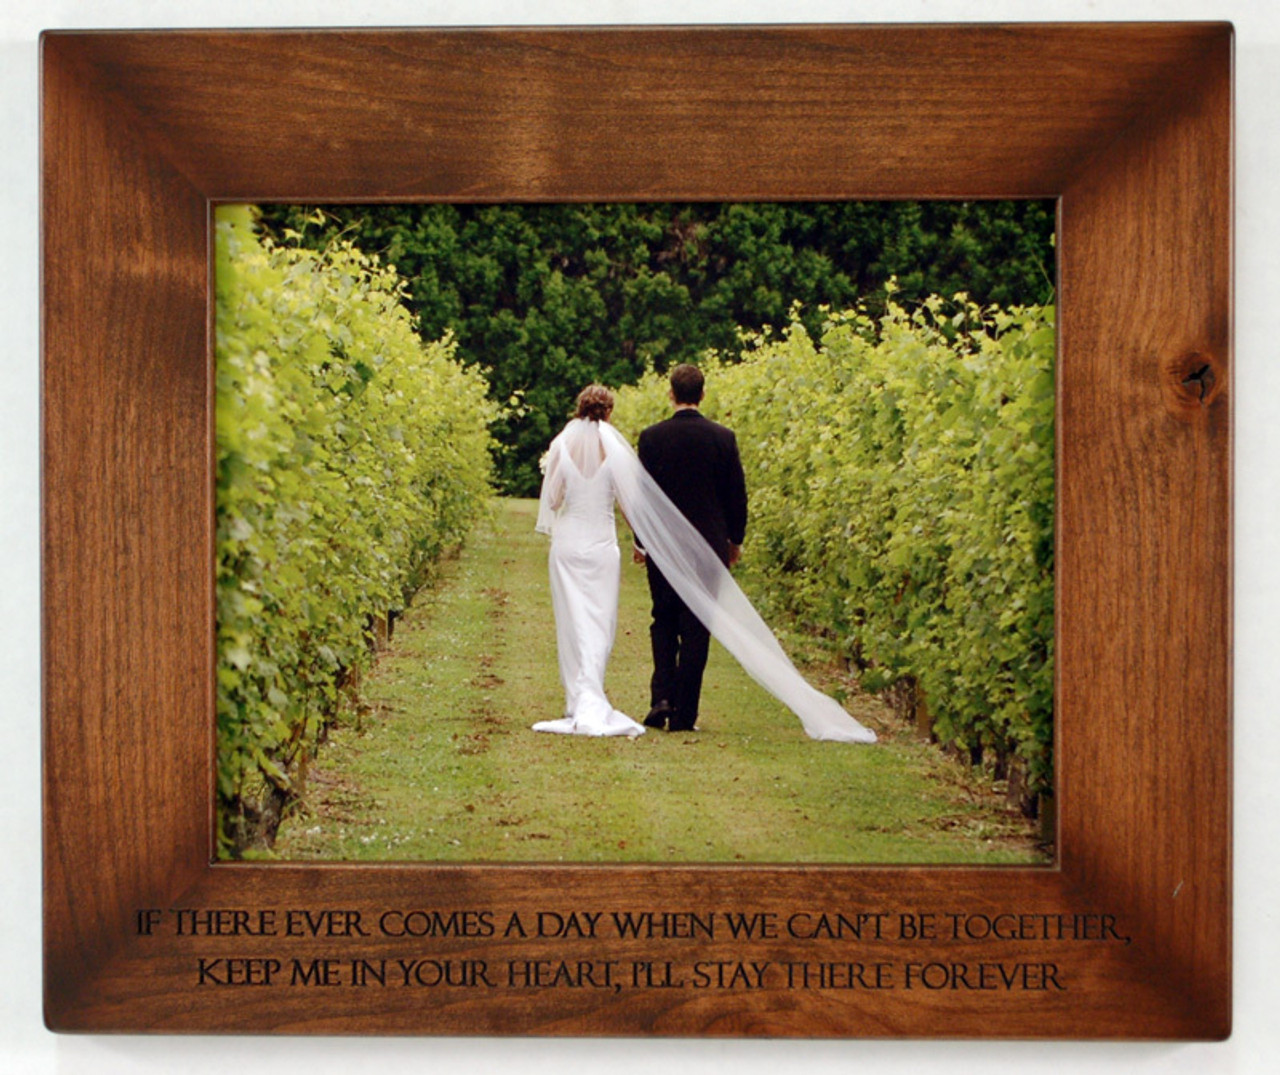 8x10 Engraved Wood Frame Personalize With Your Own Quote